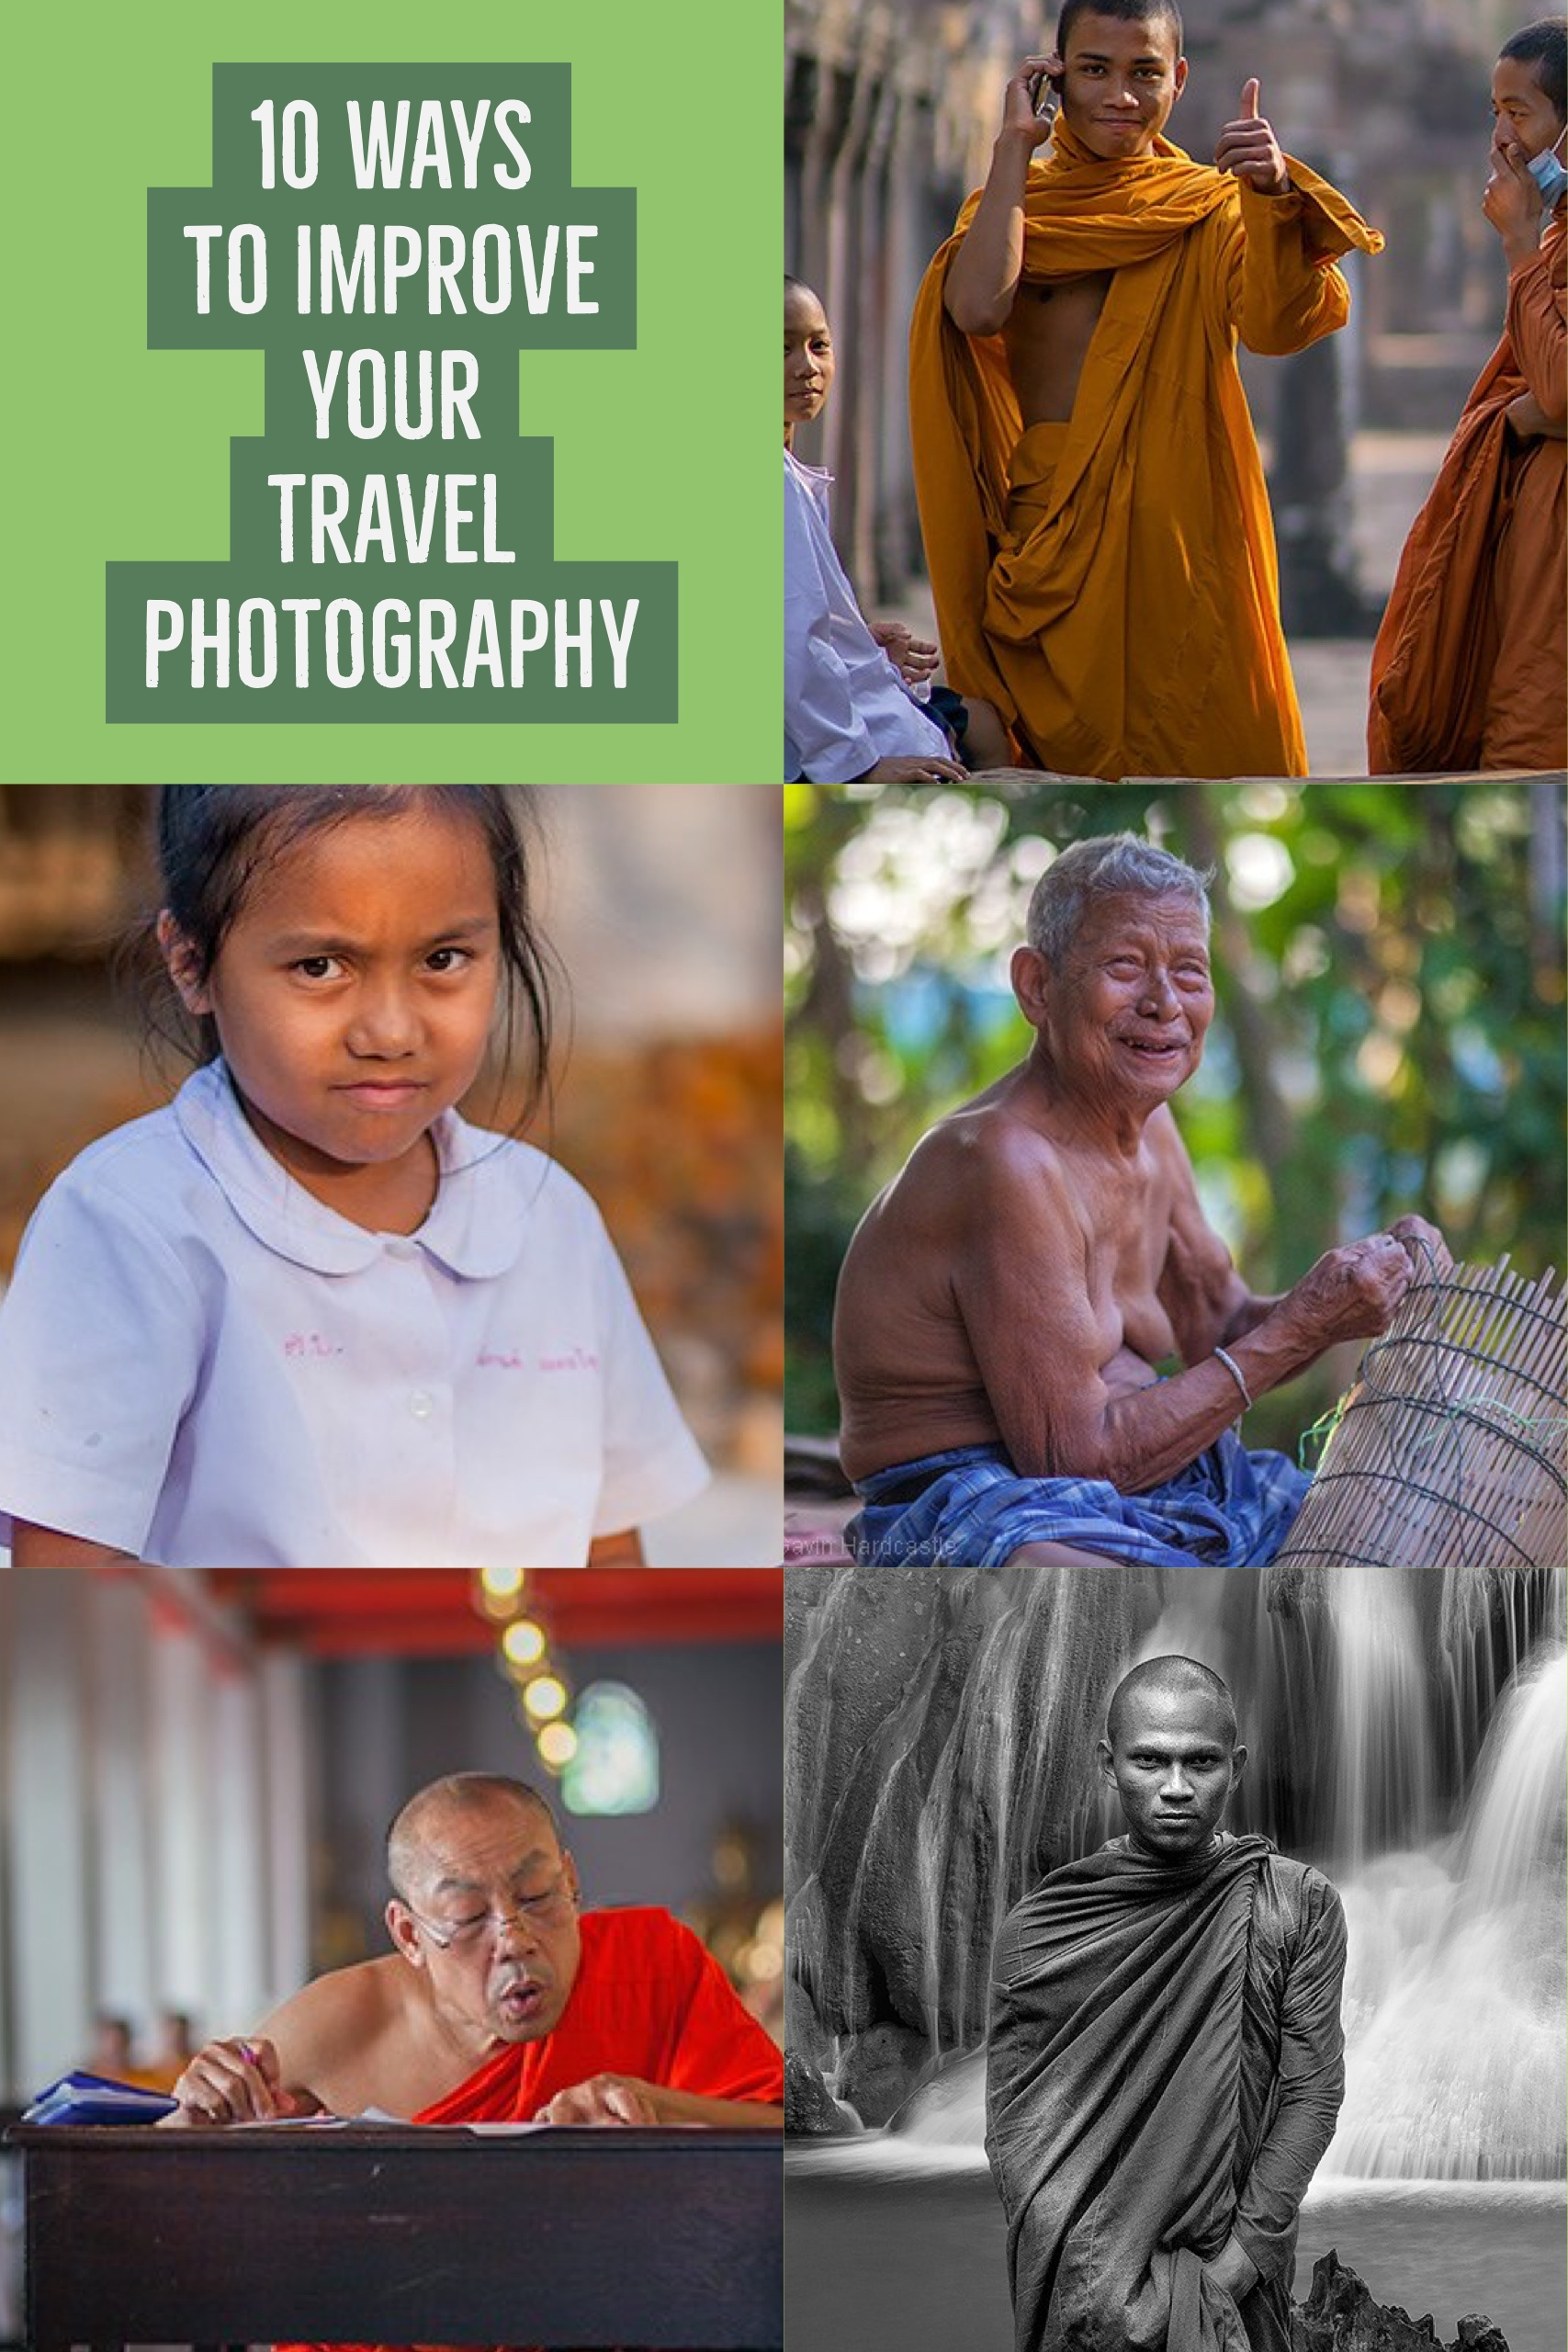 10 Ways to Improve Your Travel Photography